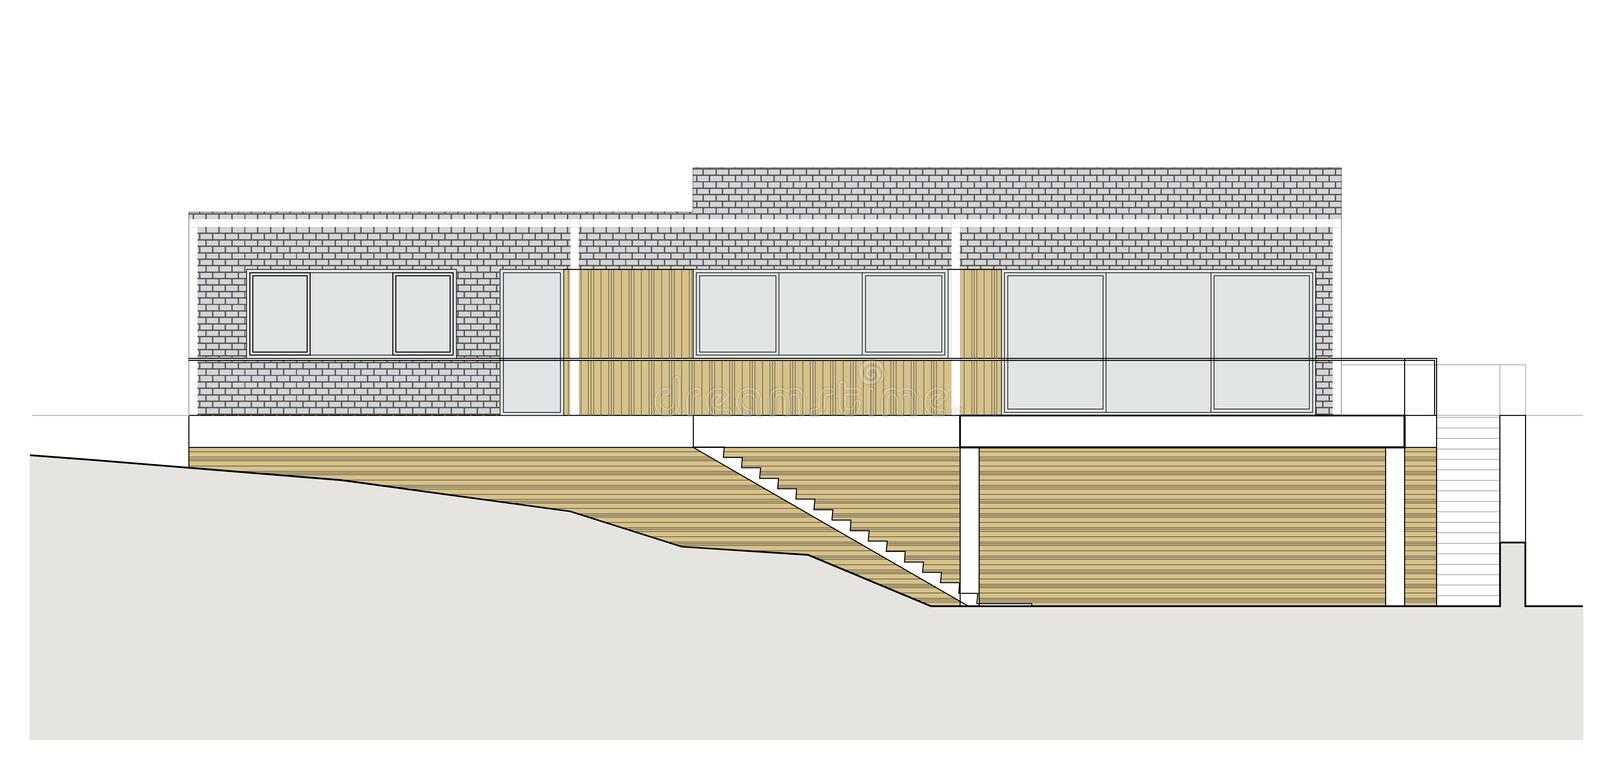 Project of the single family house. Drawing: facade of the classic single family house royalty free illustration